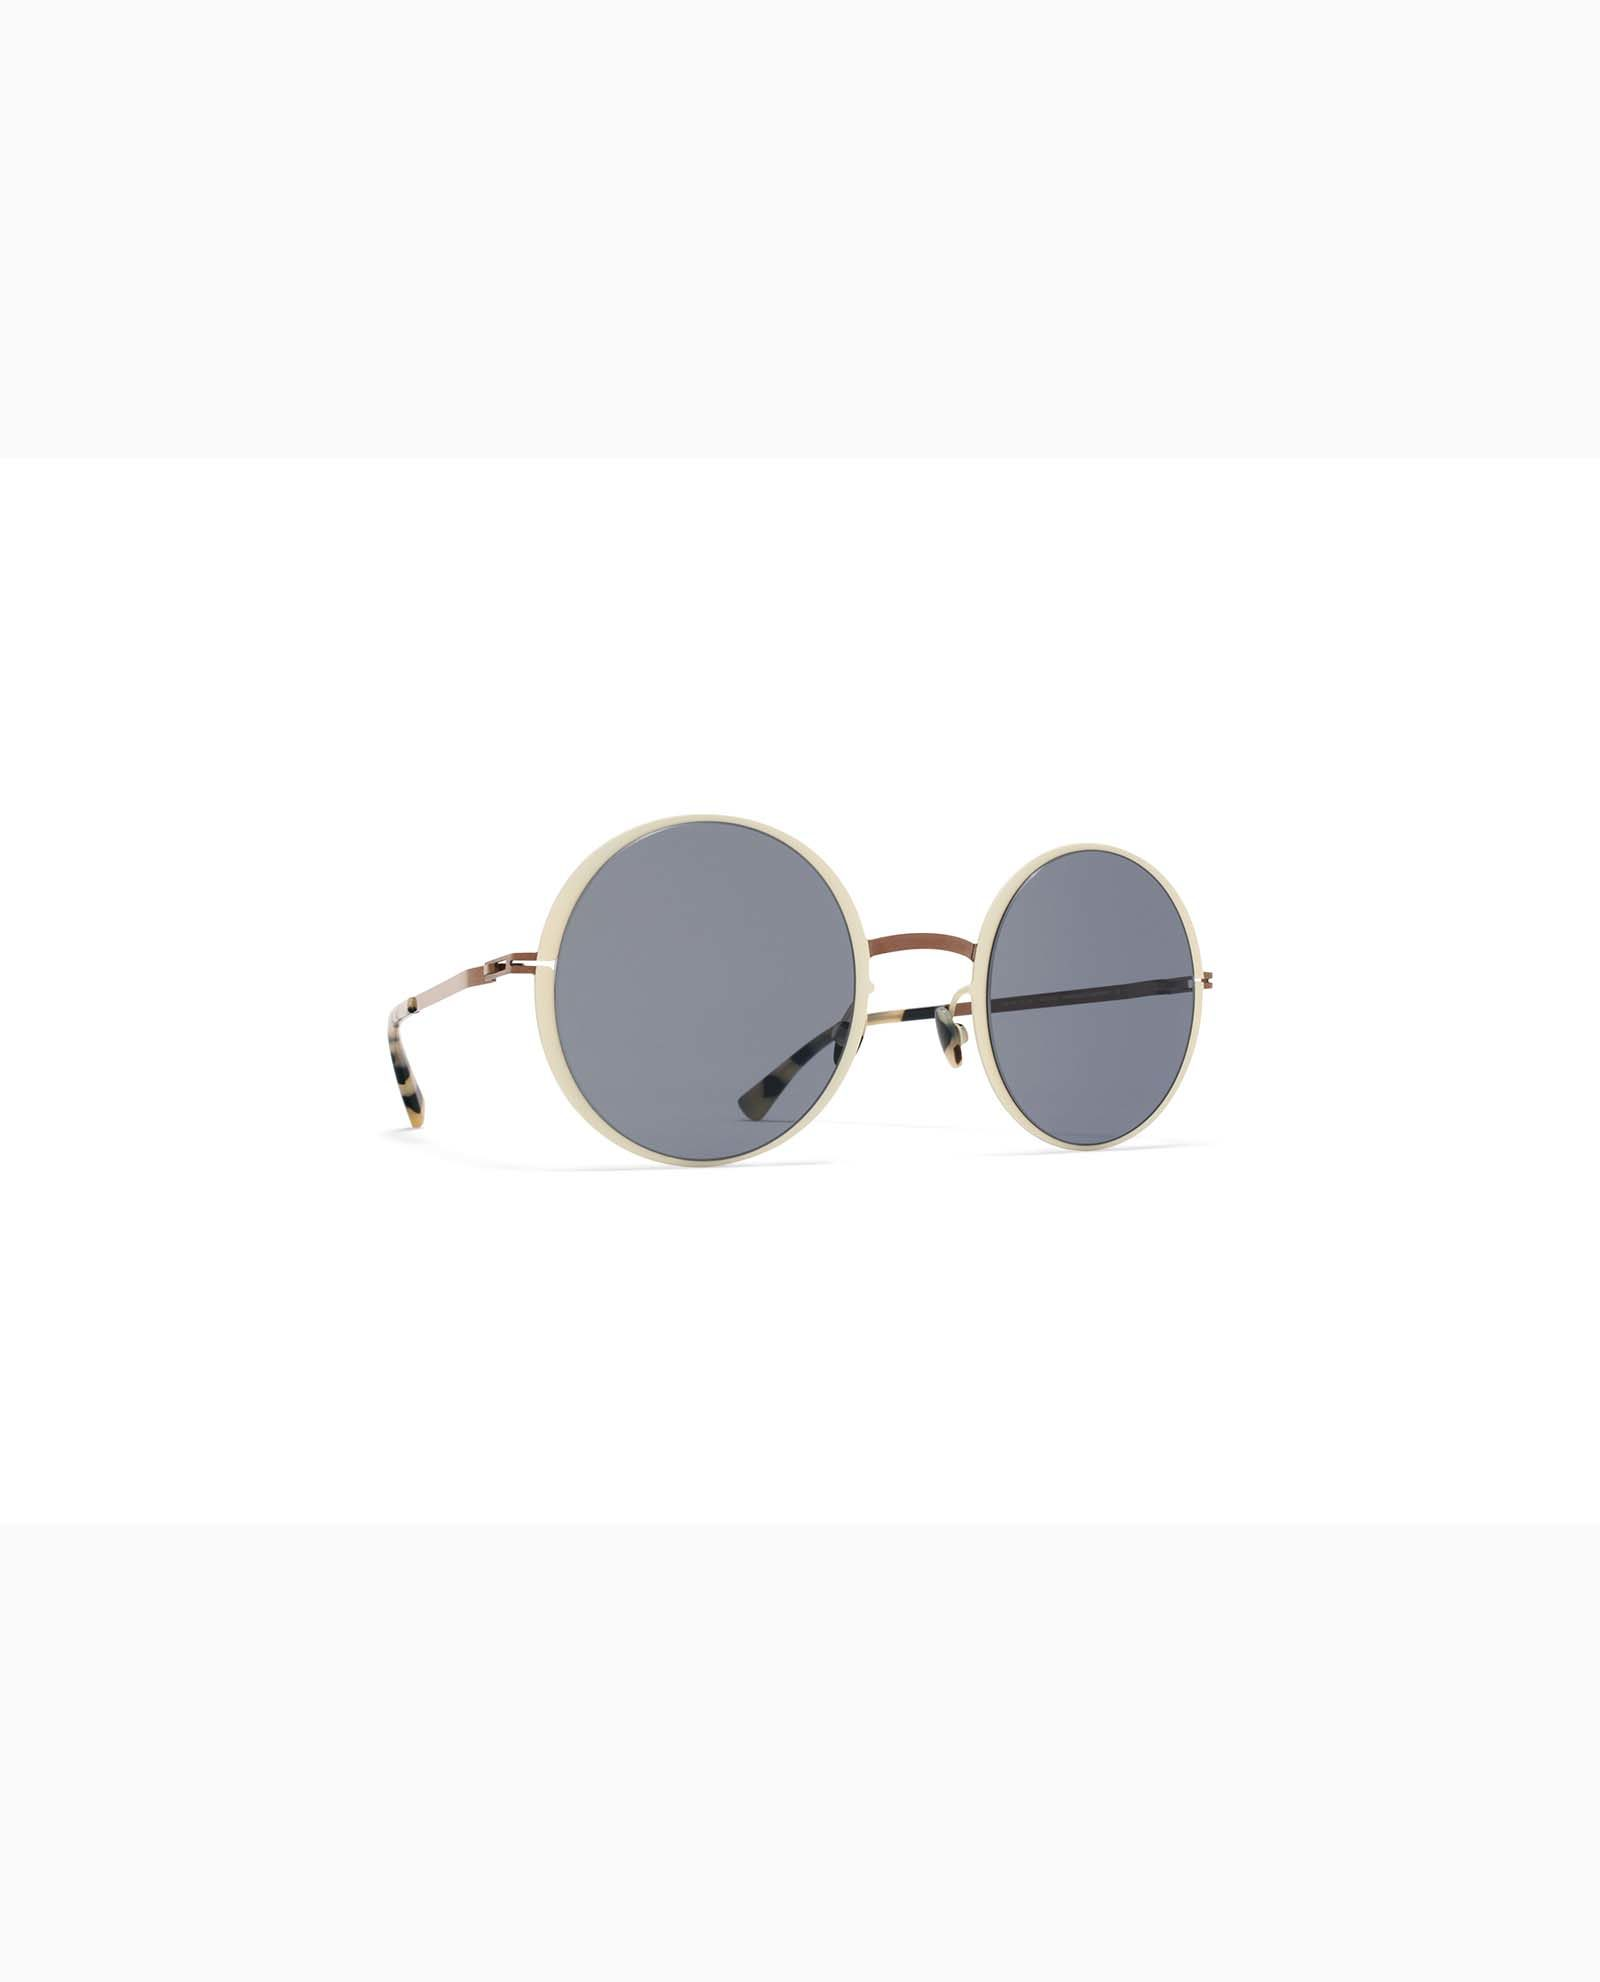 https://www.polydoruoptika.gr/wp-content/uploads/2018/05/mykita-lite-acetate-sun-joona-shiny-copper-off-woman.jpg